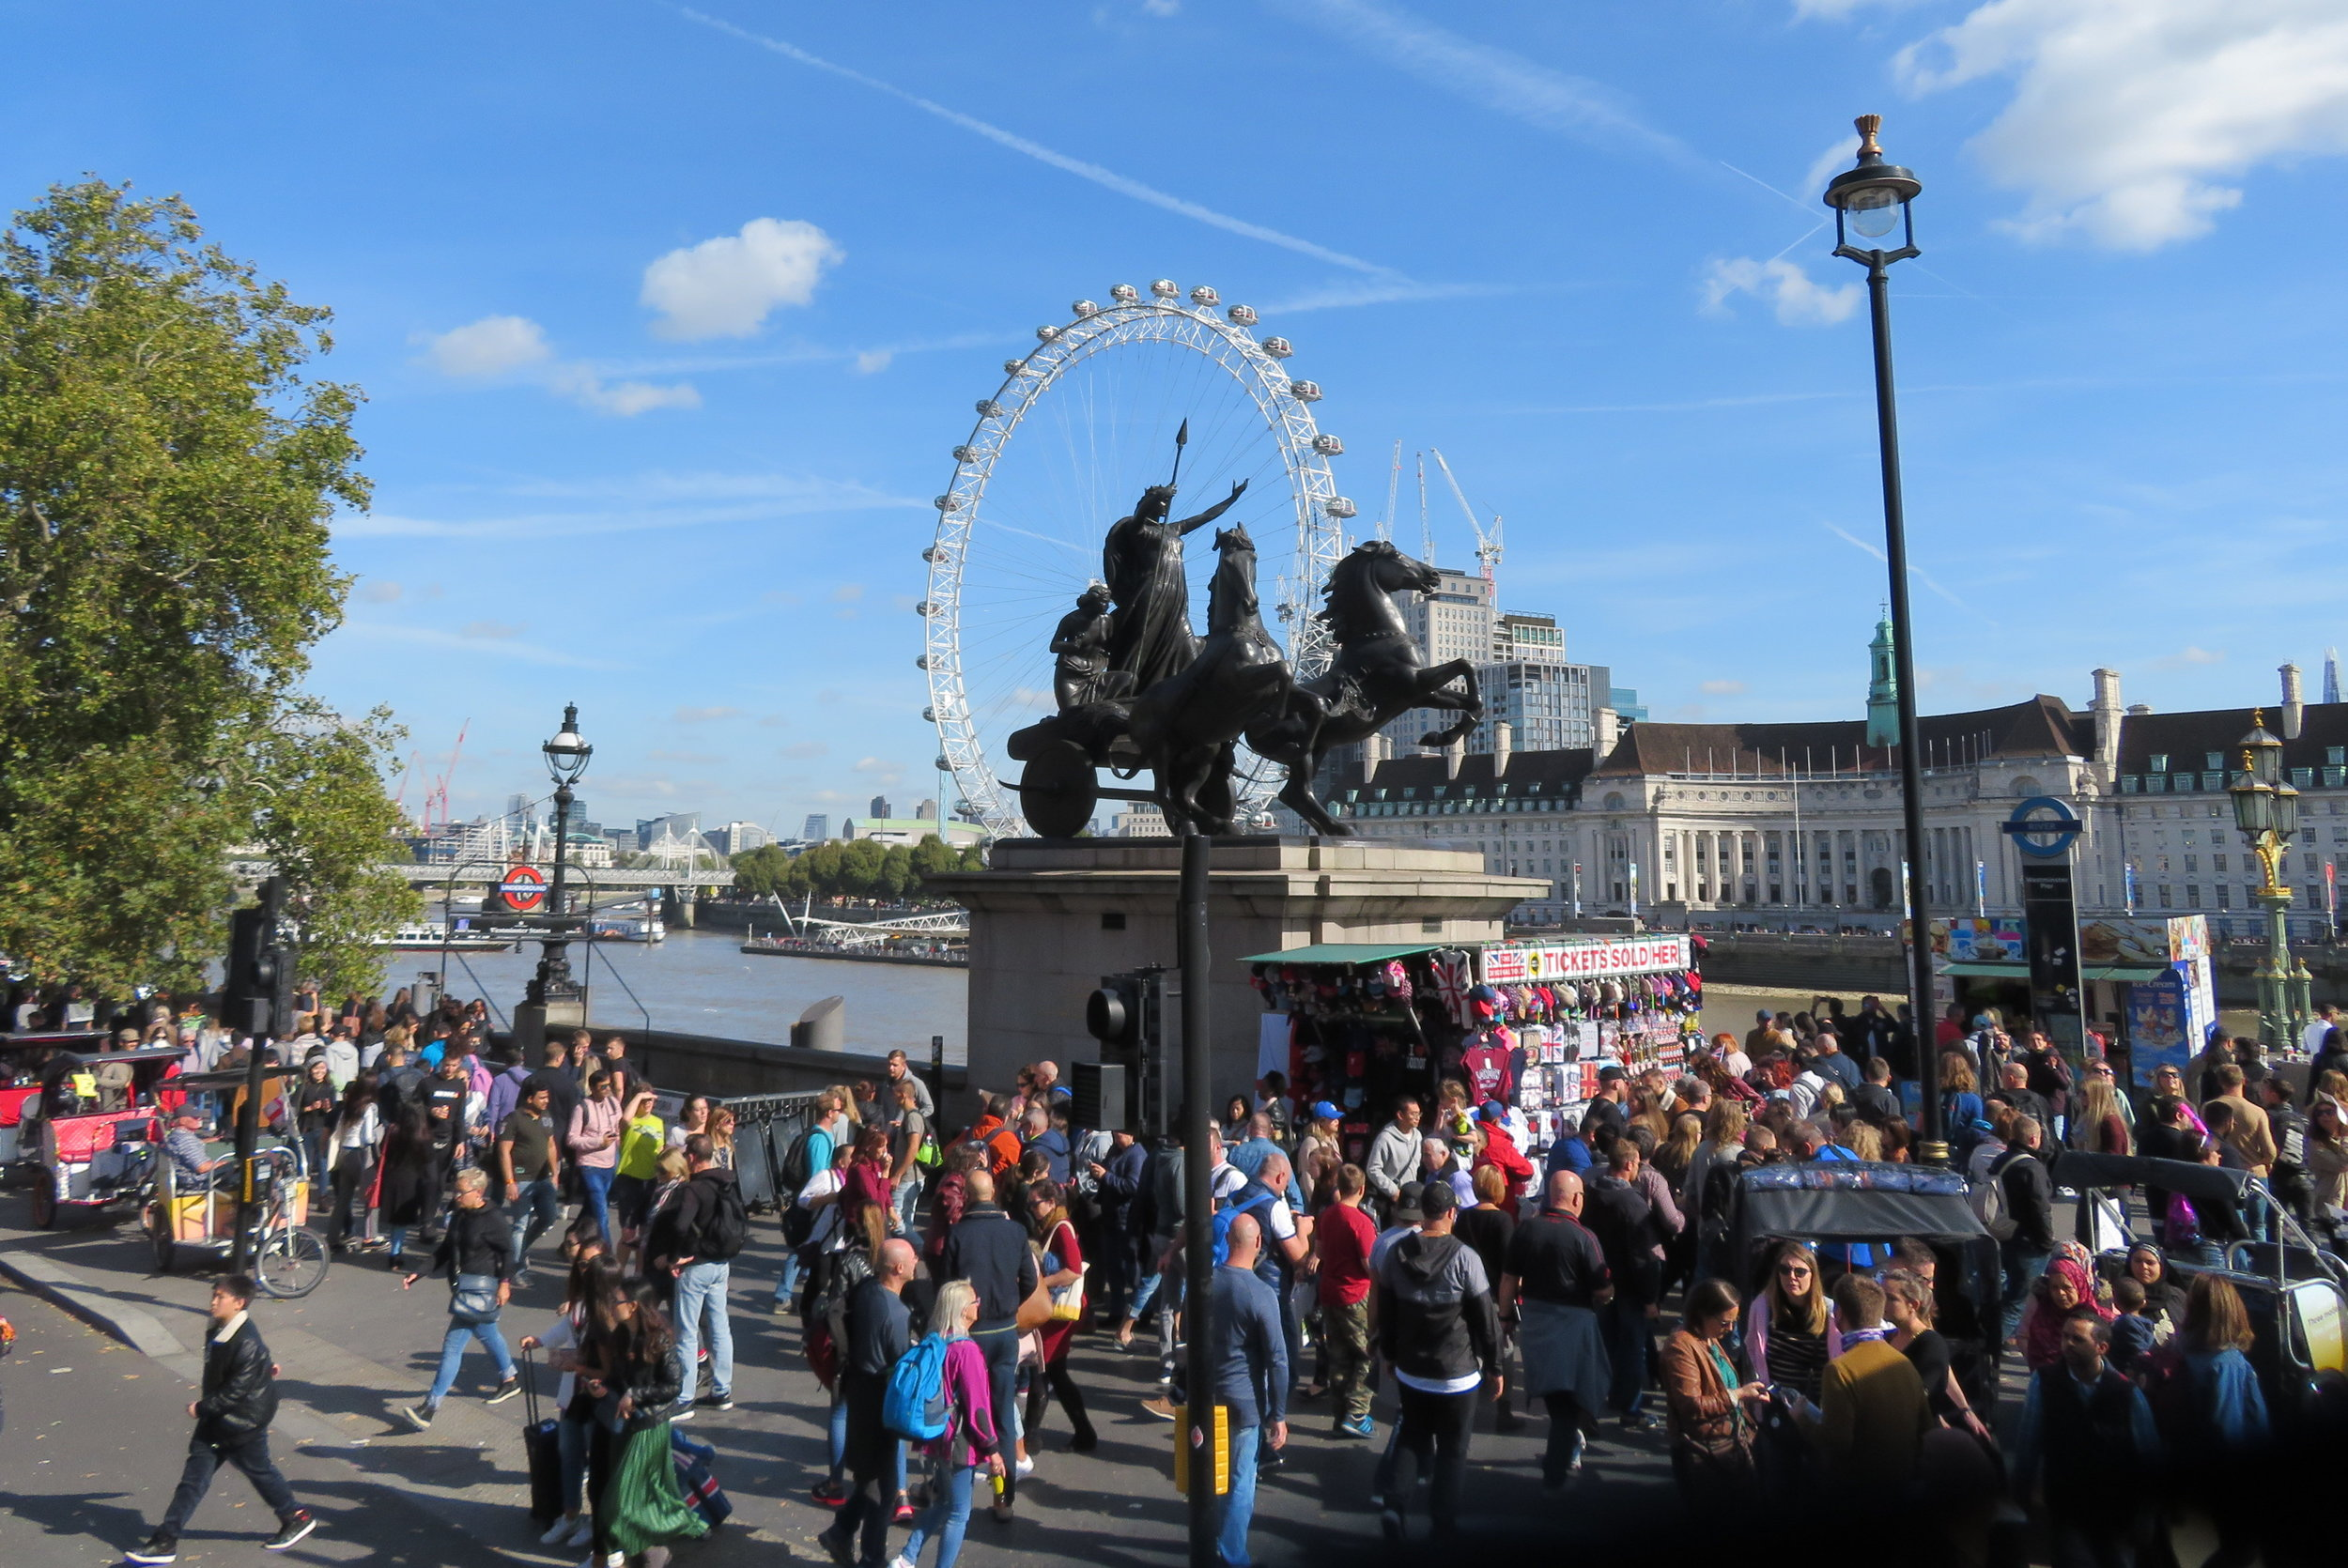 Boudica, queen of the Celtic Iceni tribe led an uprising in Roman Britain. She and her daughters are captured in the bronze sculpture above and seem to be catching a ride on the London Eye.